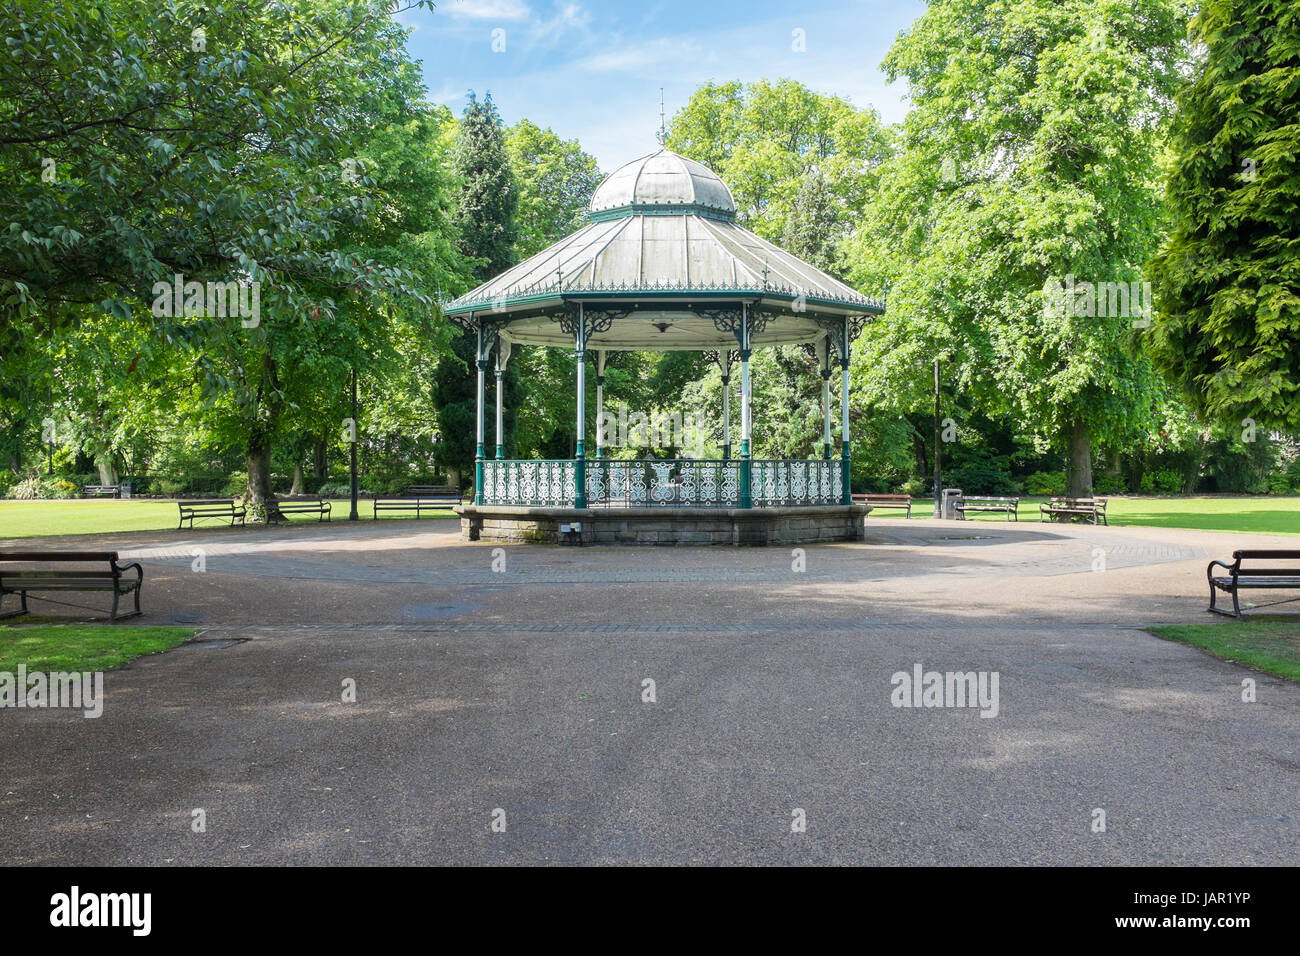 Bandstand at Hall Leys Park in Matlock, Derbyshire - Stock Image